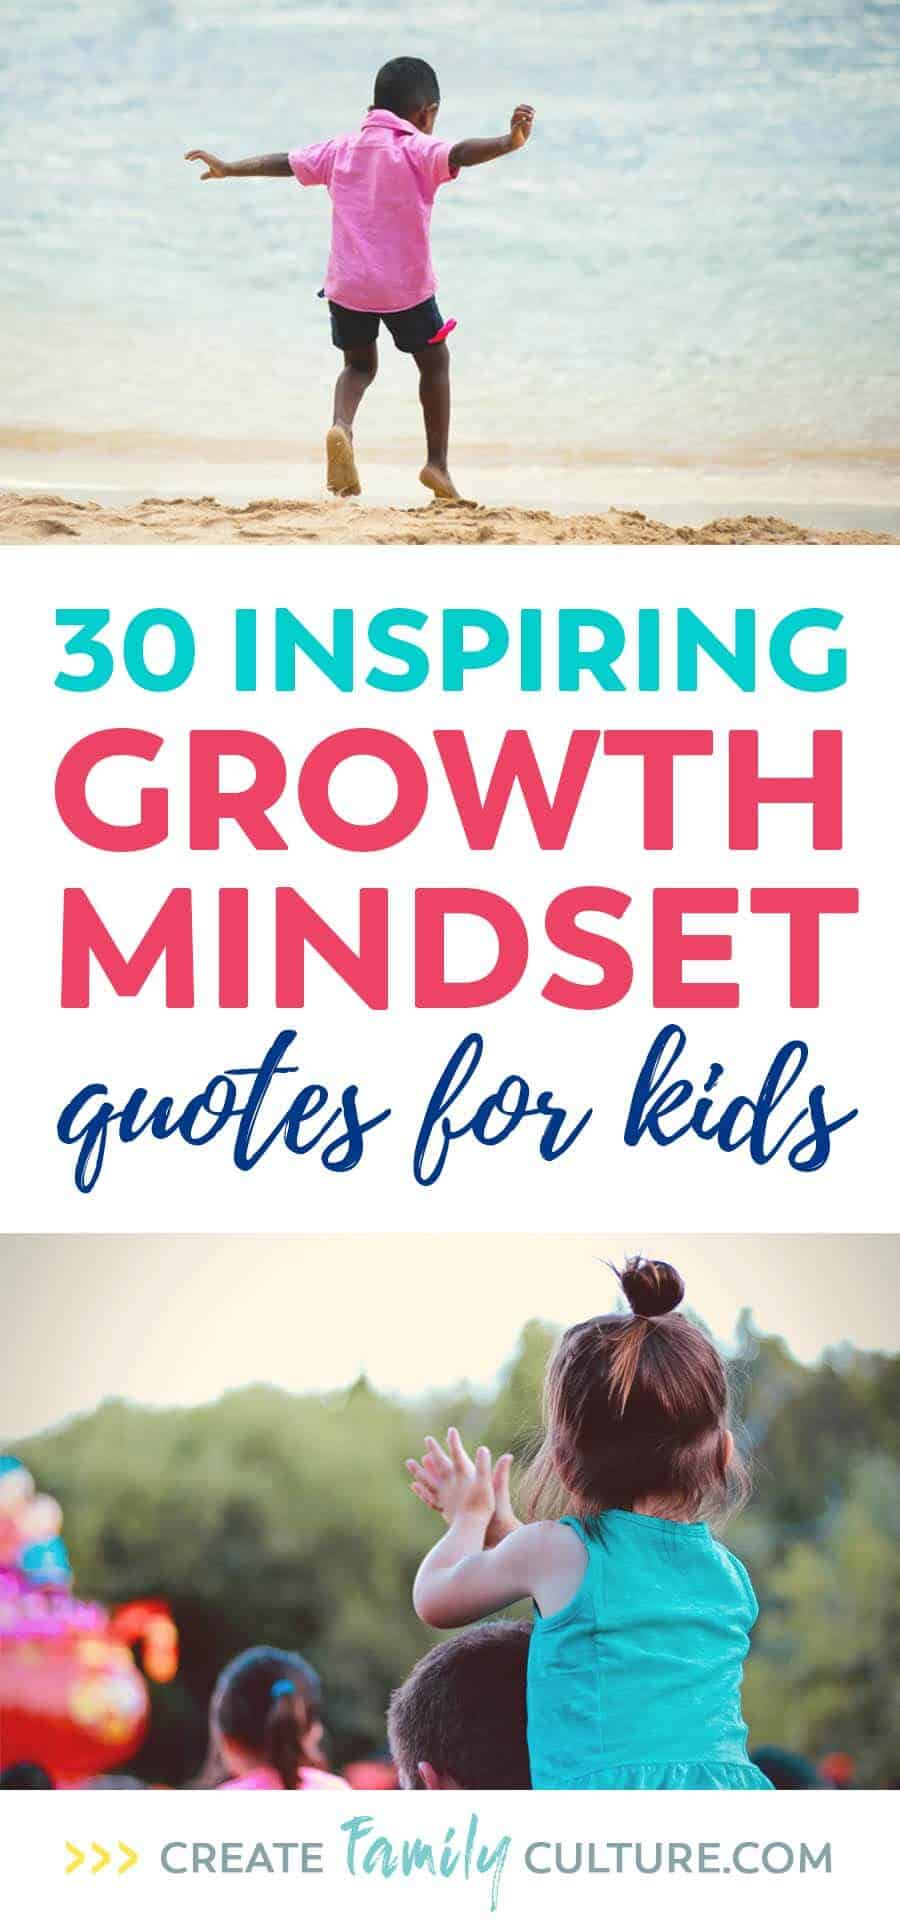 30 Growth Mindset Quotes for Kids - Create Family Culture